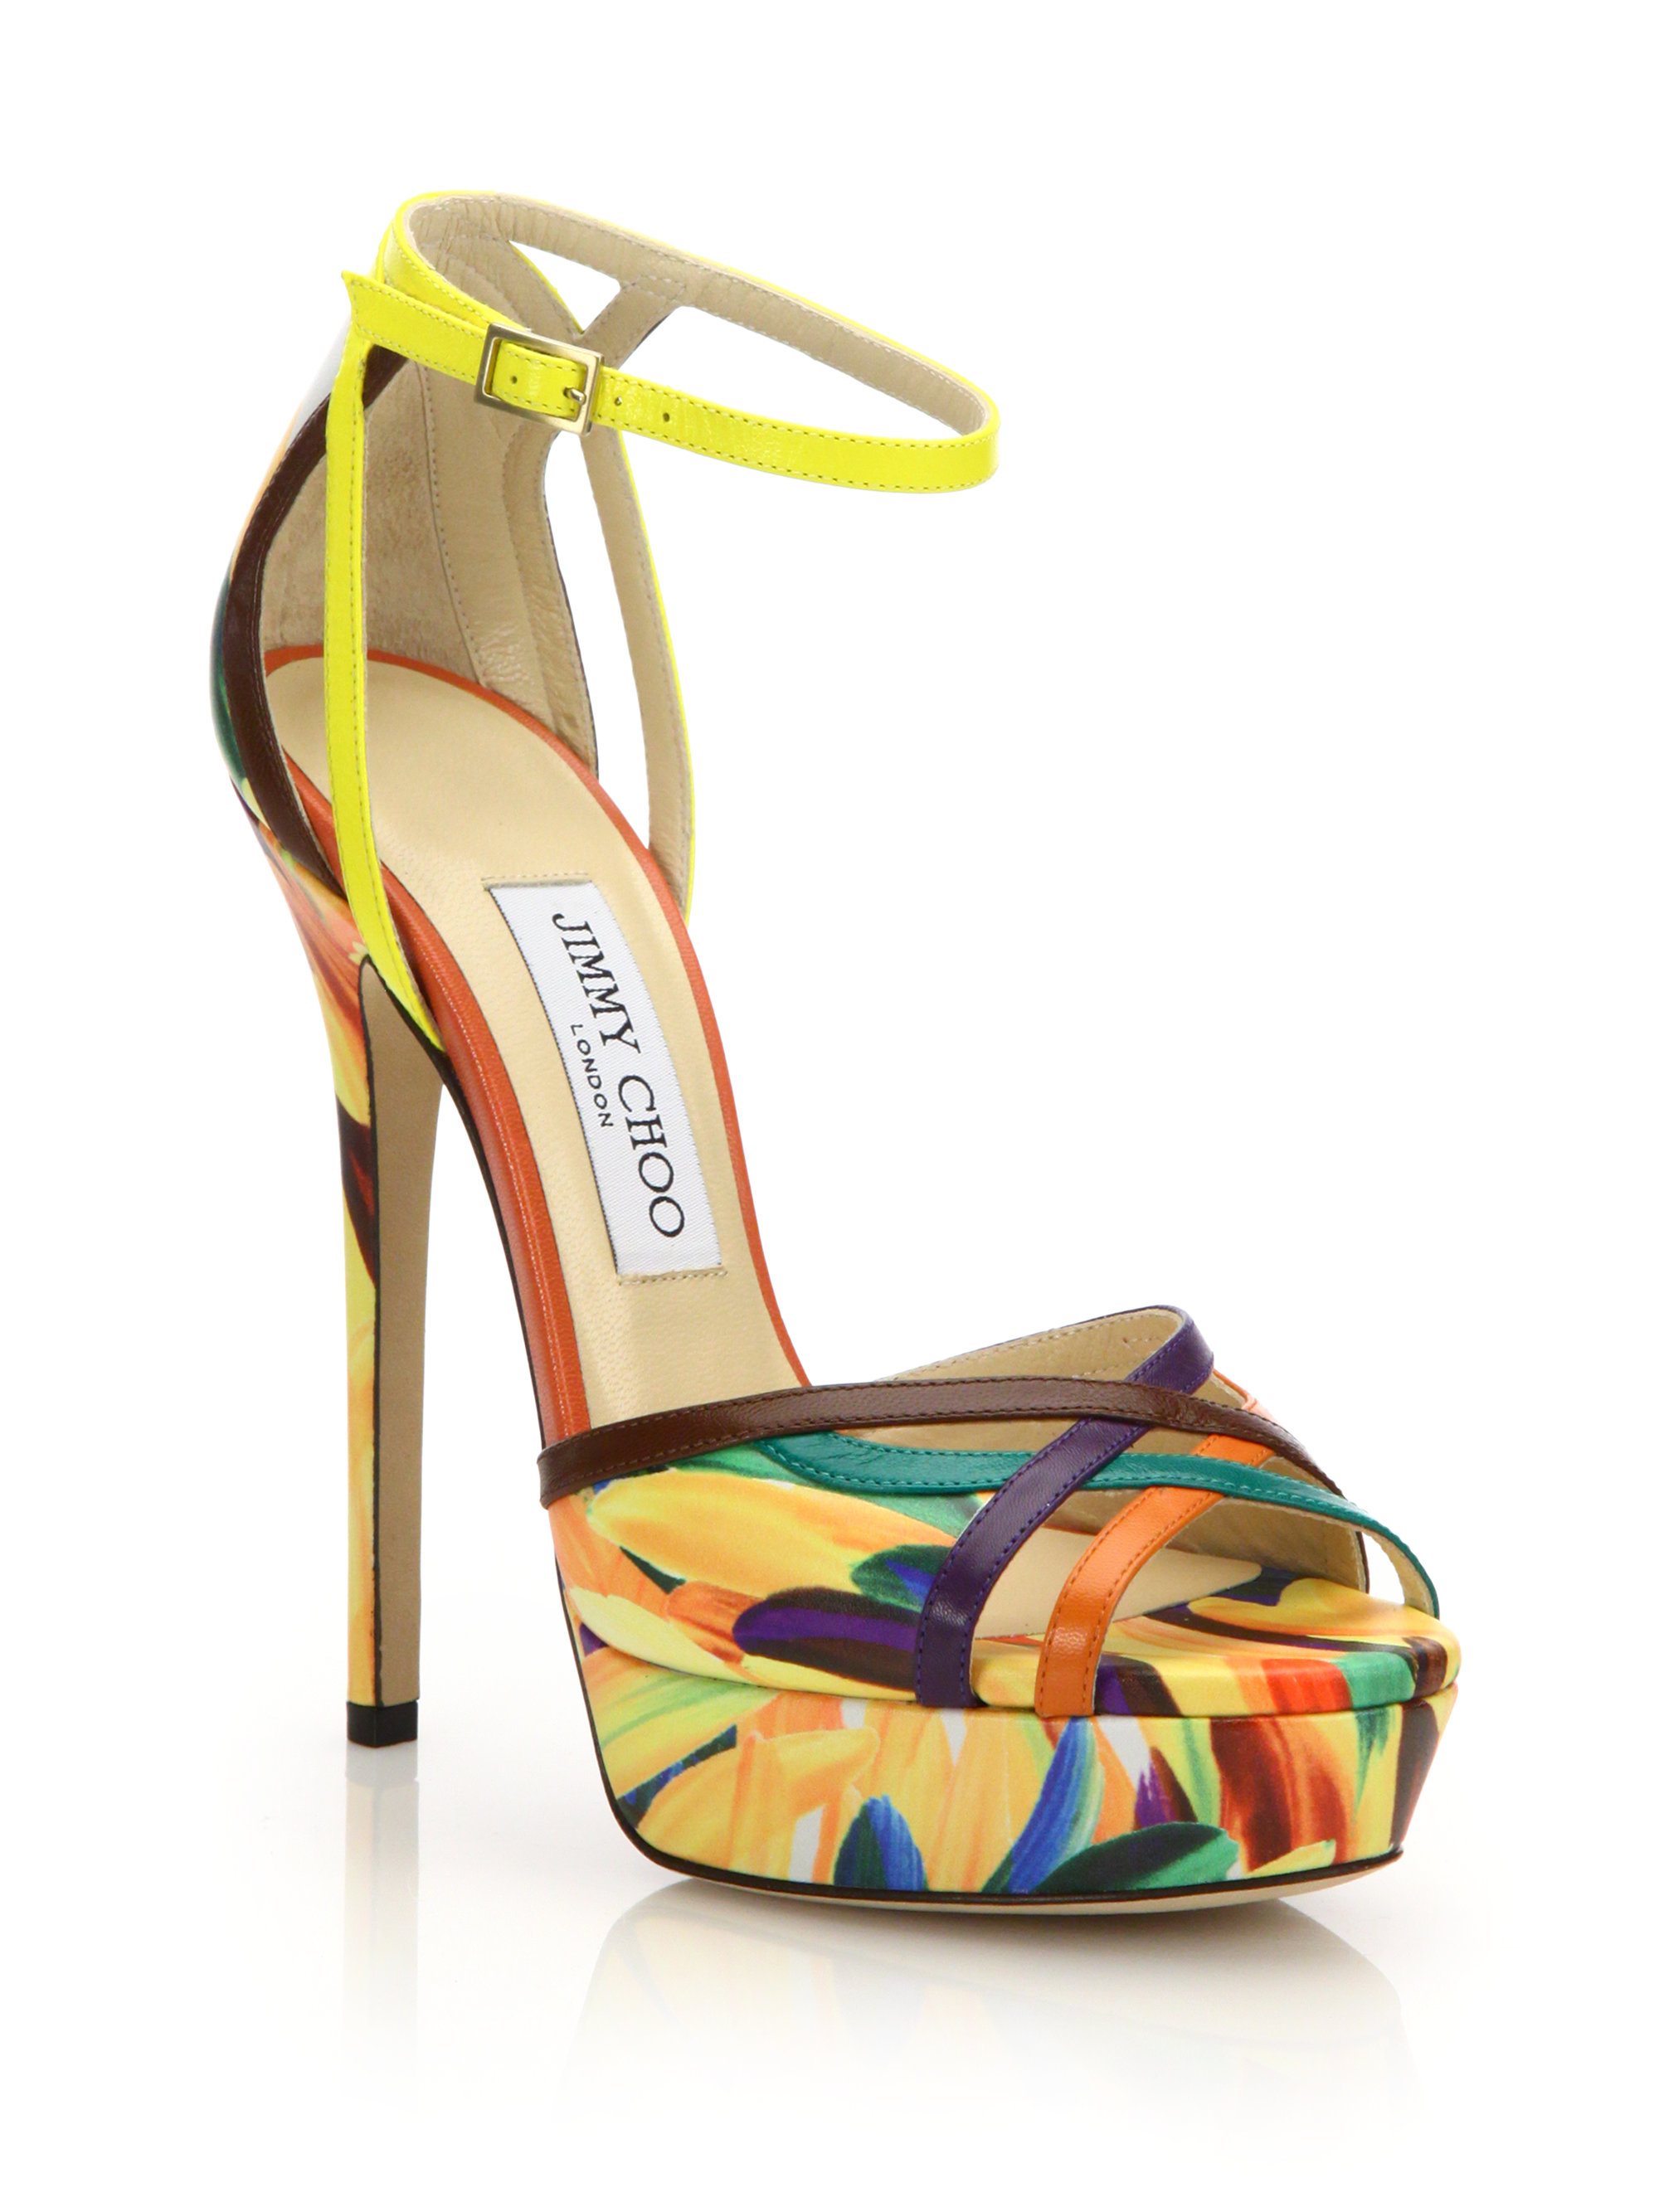 cca9c4490c9 Lyst - Jimmy Choo Laurita Feather-print Leather Platform Sandals in ...